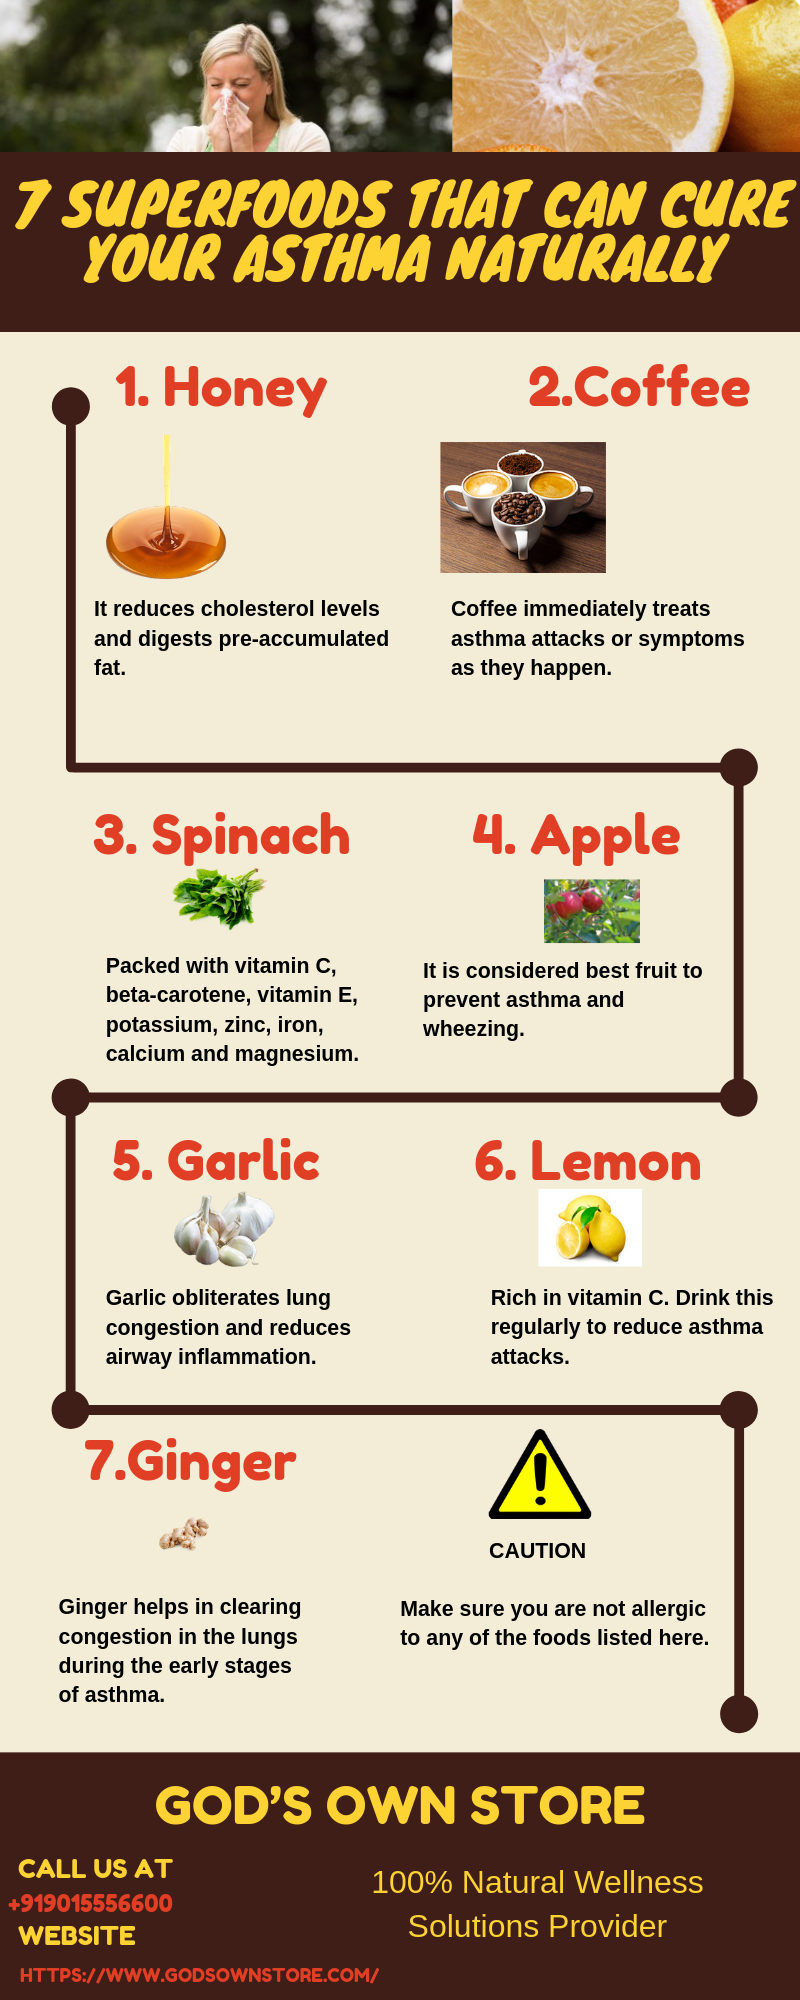 Anti-Asthma Natural Warriors: 7 Superfoods that Fight Asthma - Infographic